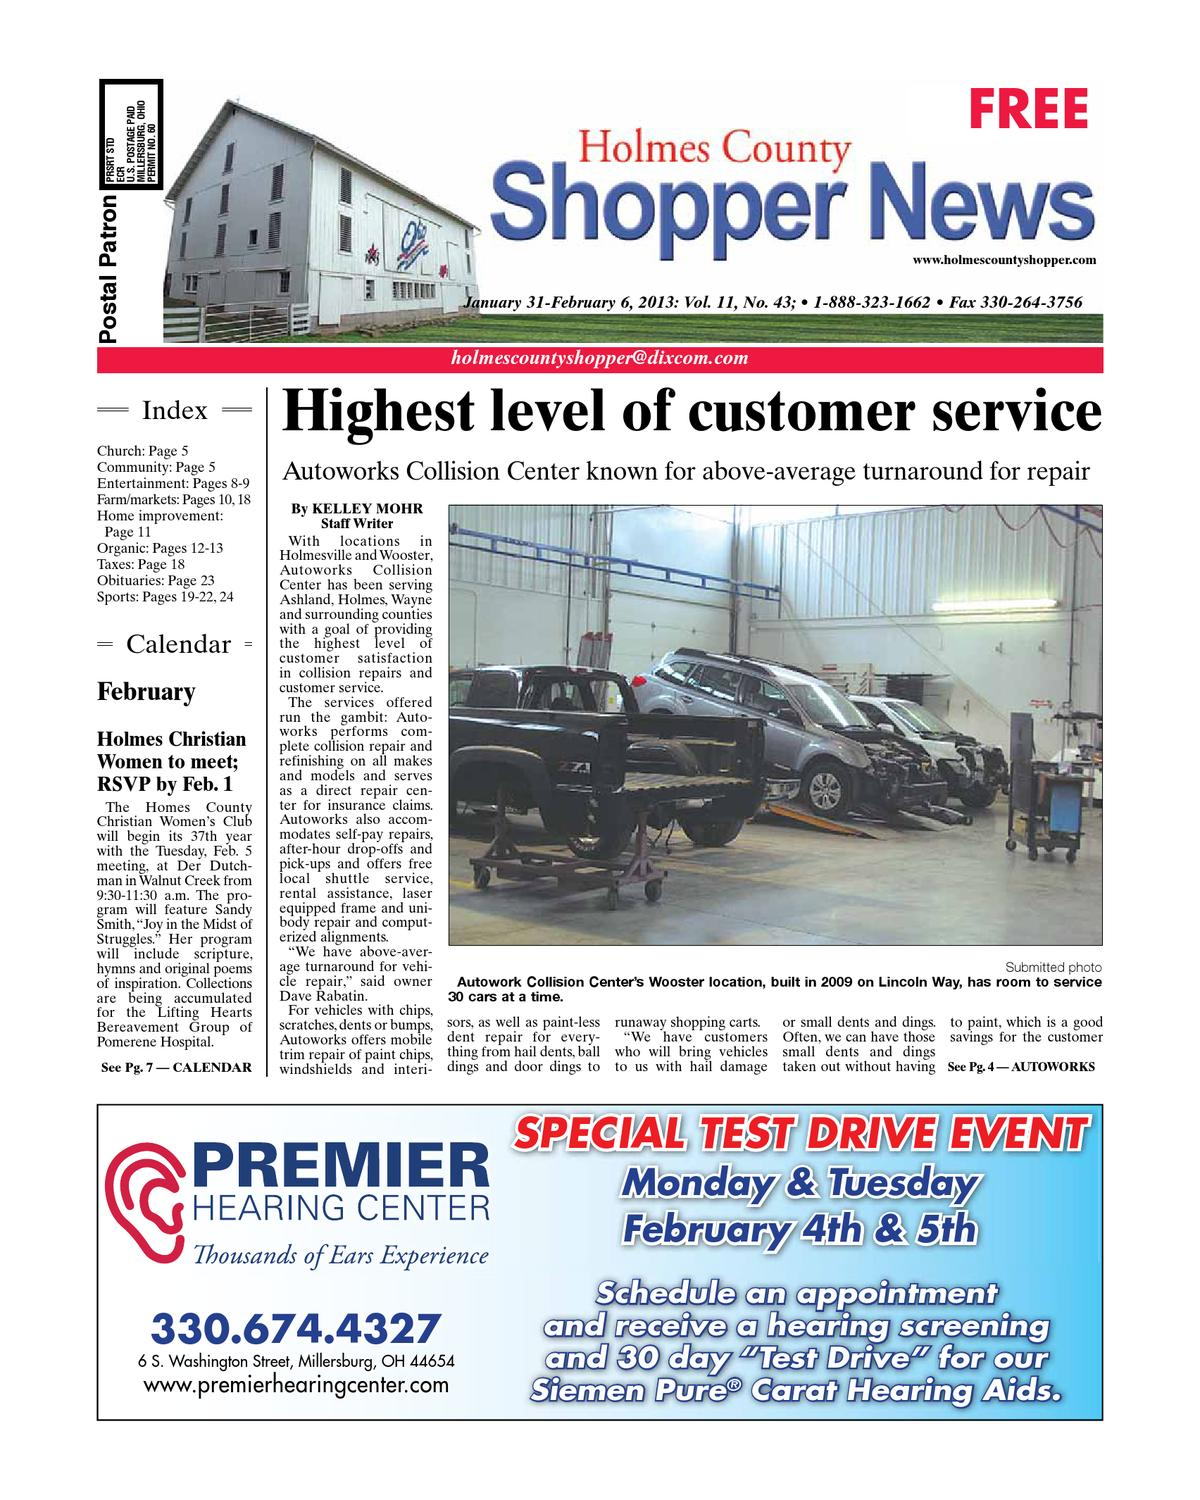 Holmes county shopper jan 31 2013 by gatehouse media neo issuu fandeluxe Image collections